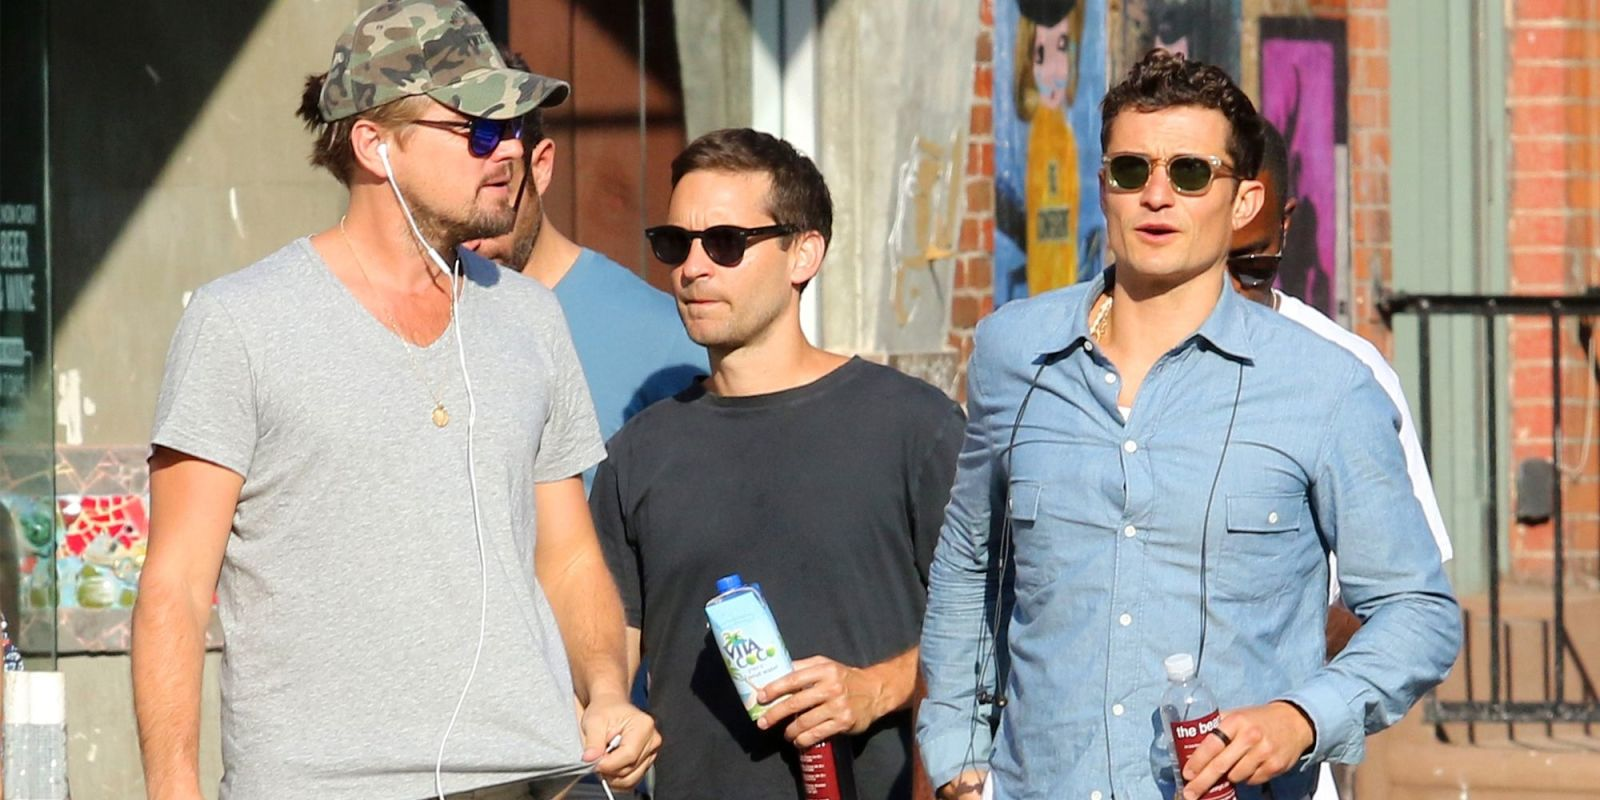 Leonardo DiCaprio, Tobey Maguire and Orlando Bloom Set the Record as Hottest Dog Walkers